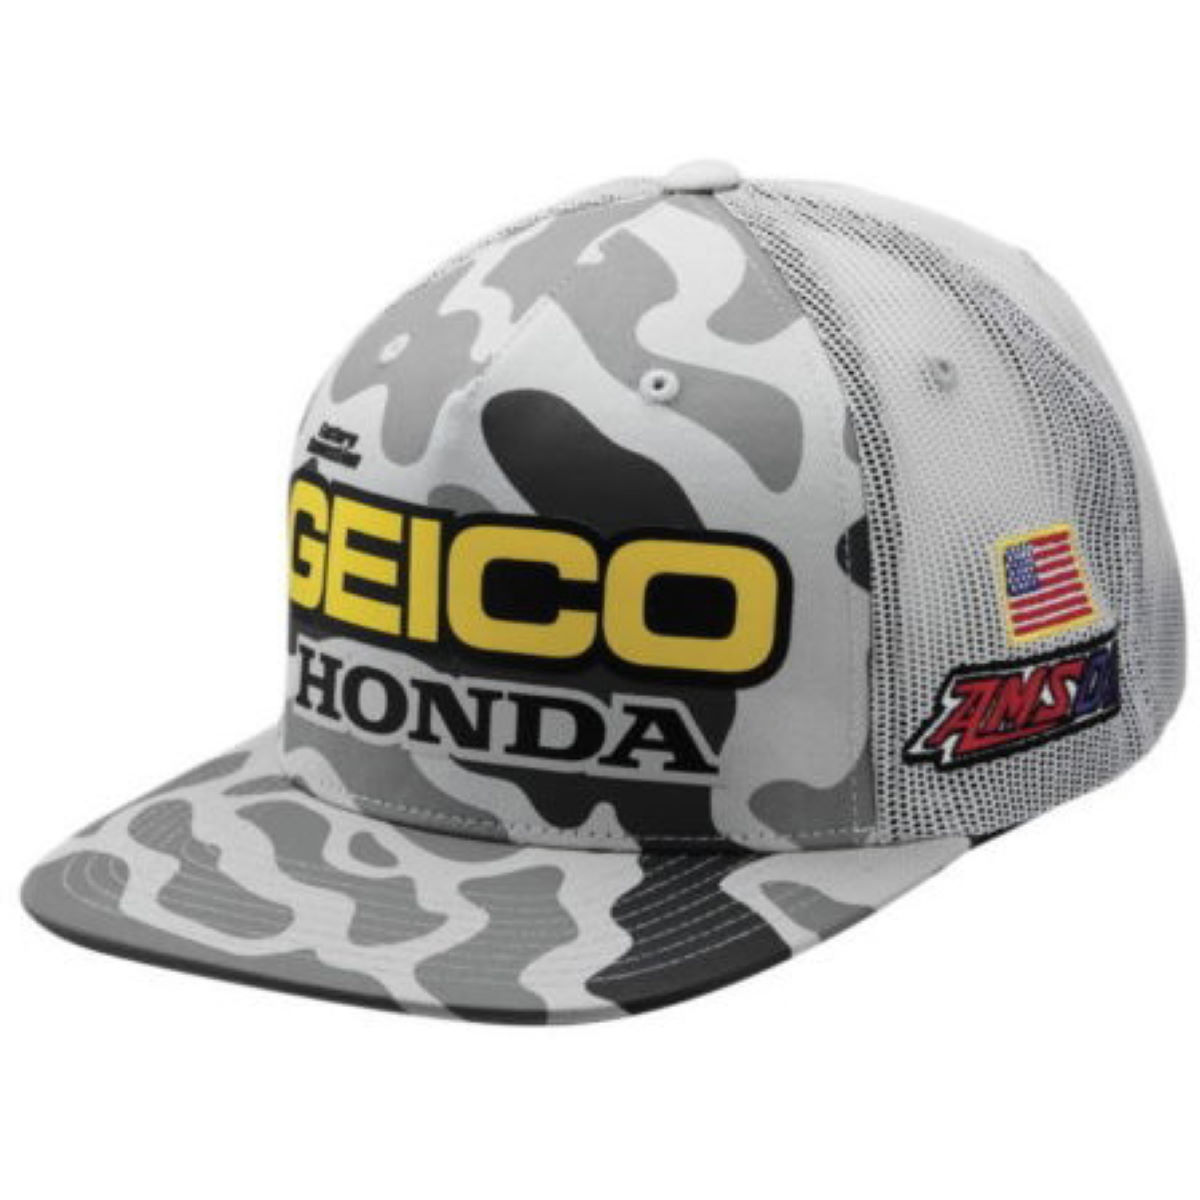 100% Geico Honda Podium Snapback Hat - One Size Snow Camo | Hats